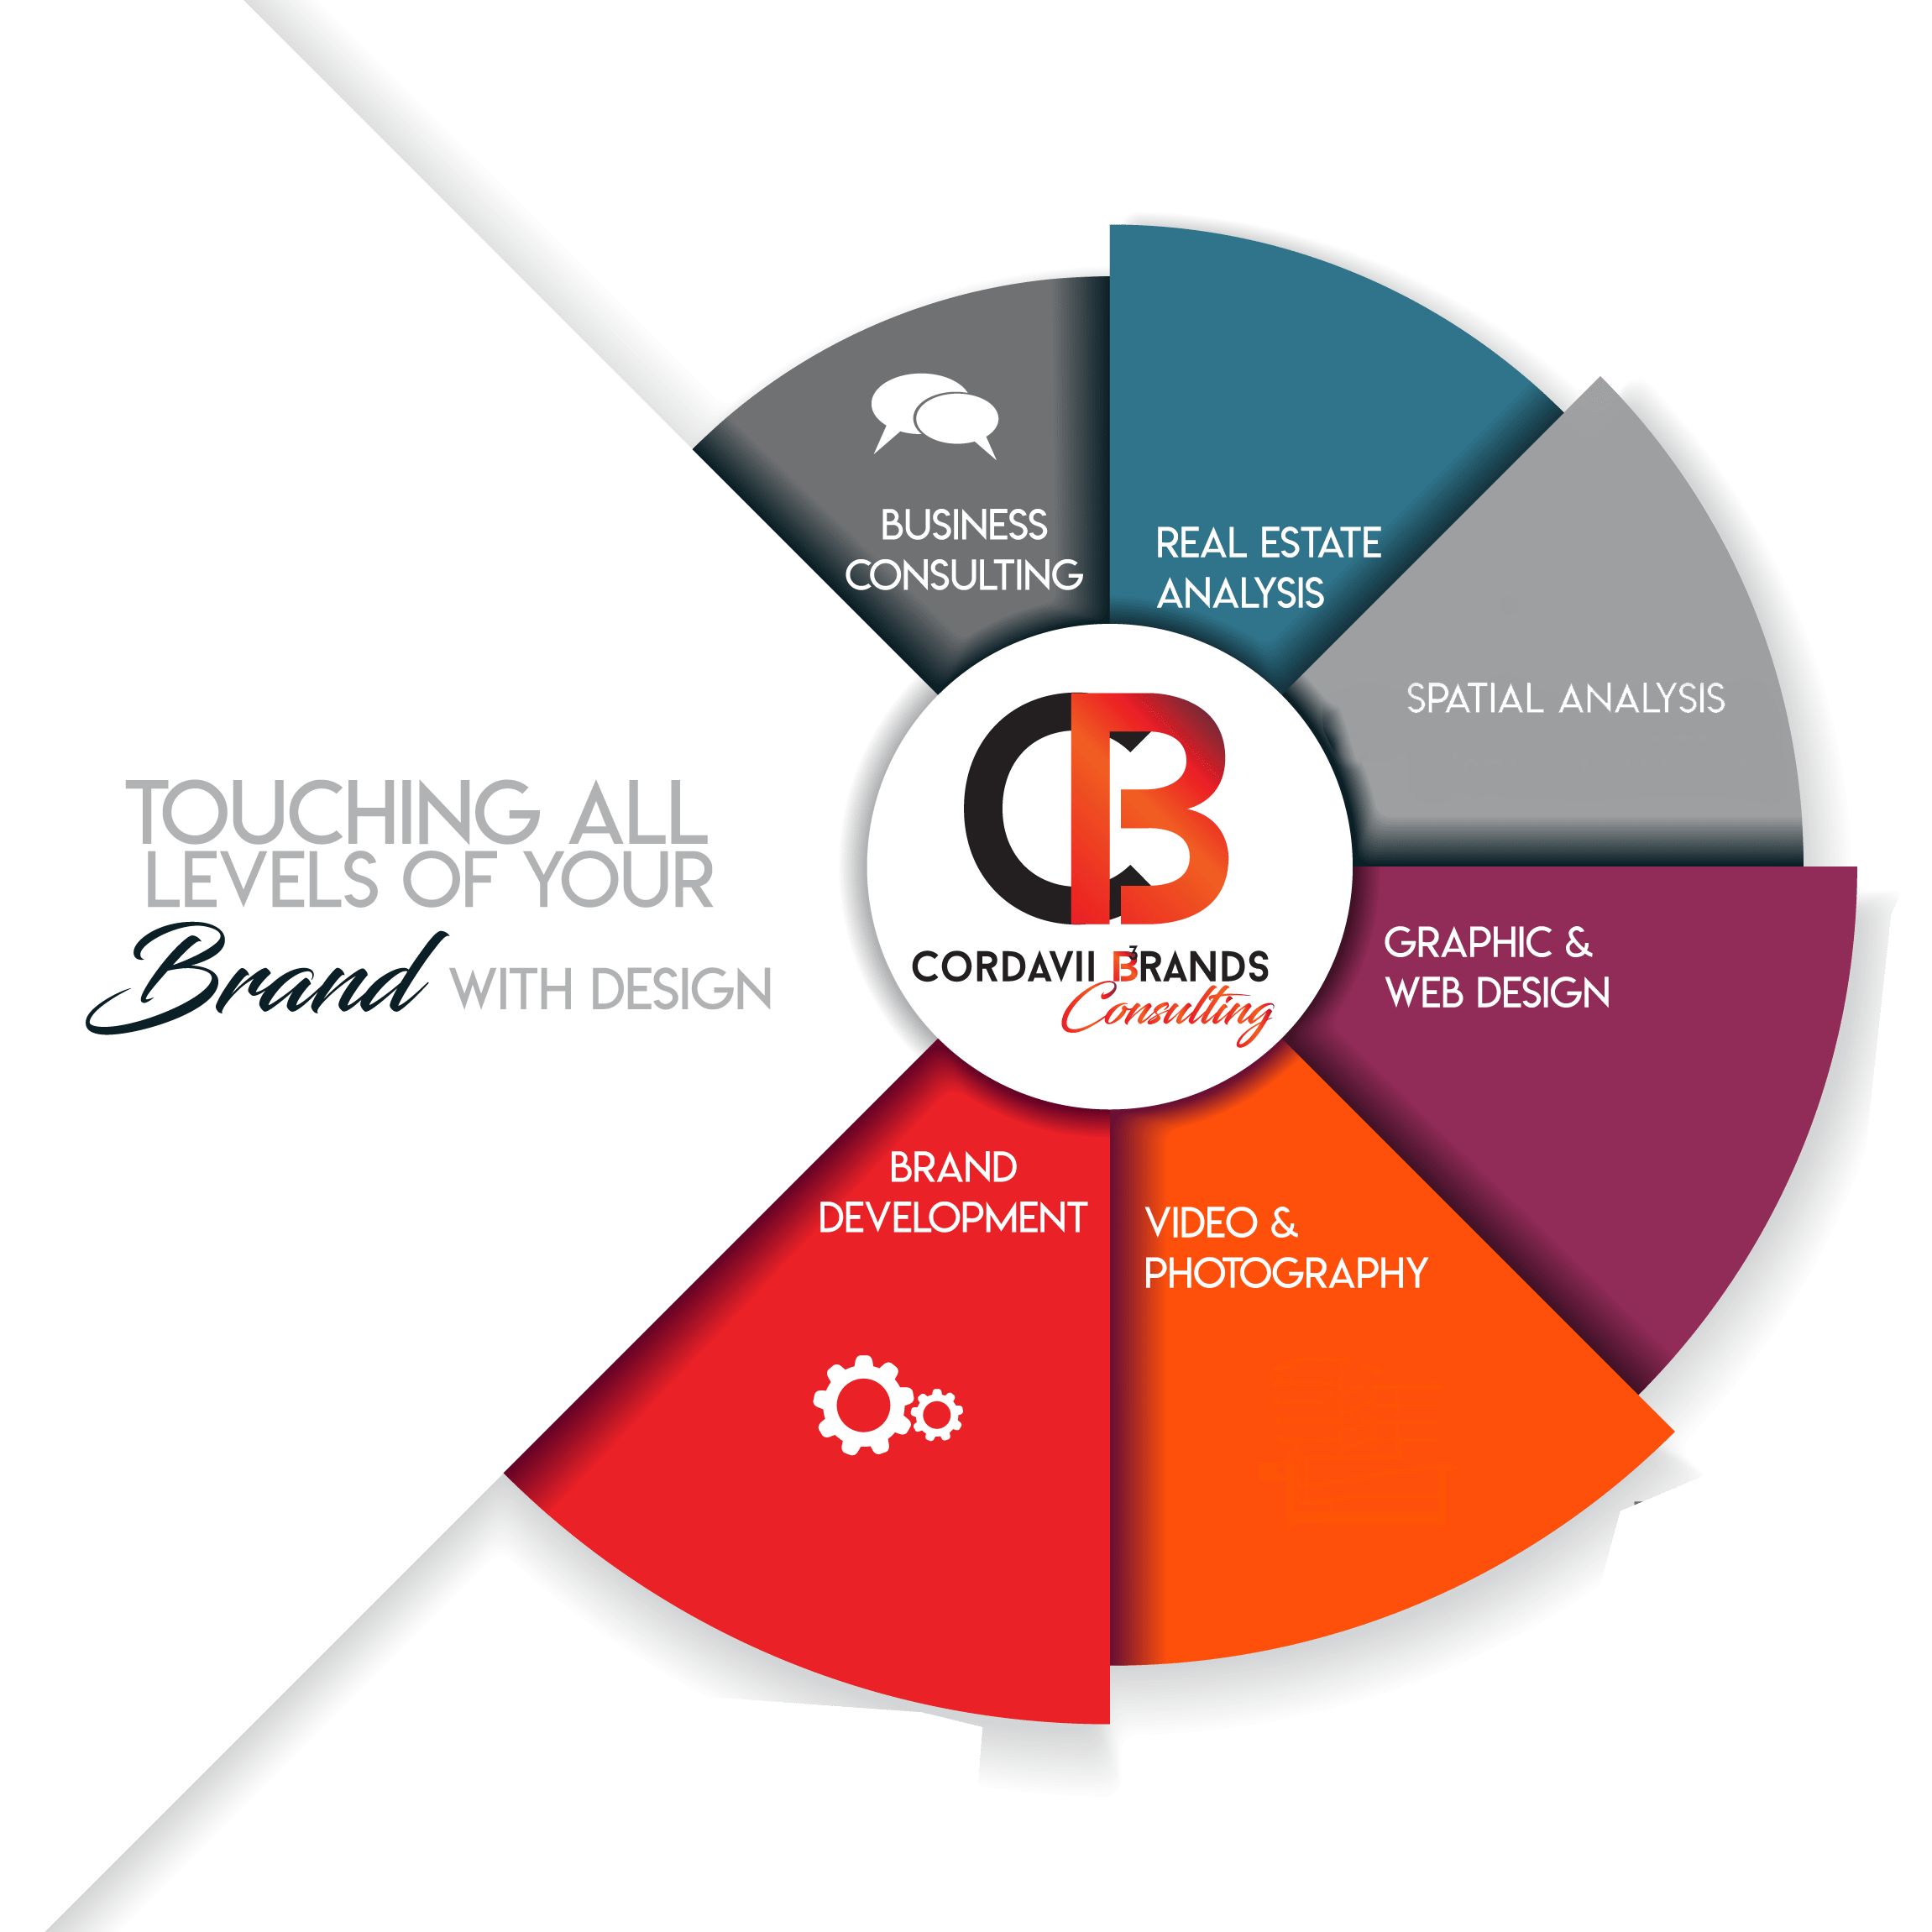 Cordavii Brand Consulting Offerings and Process